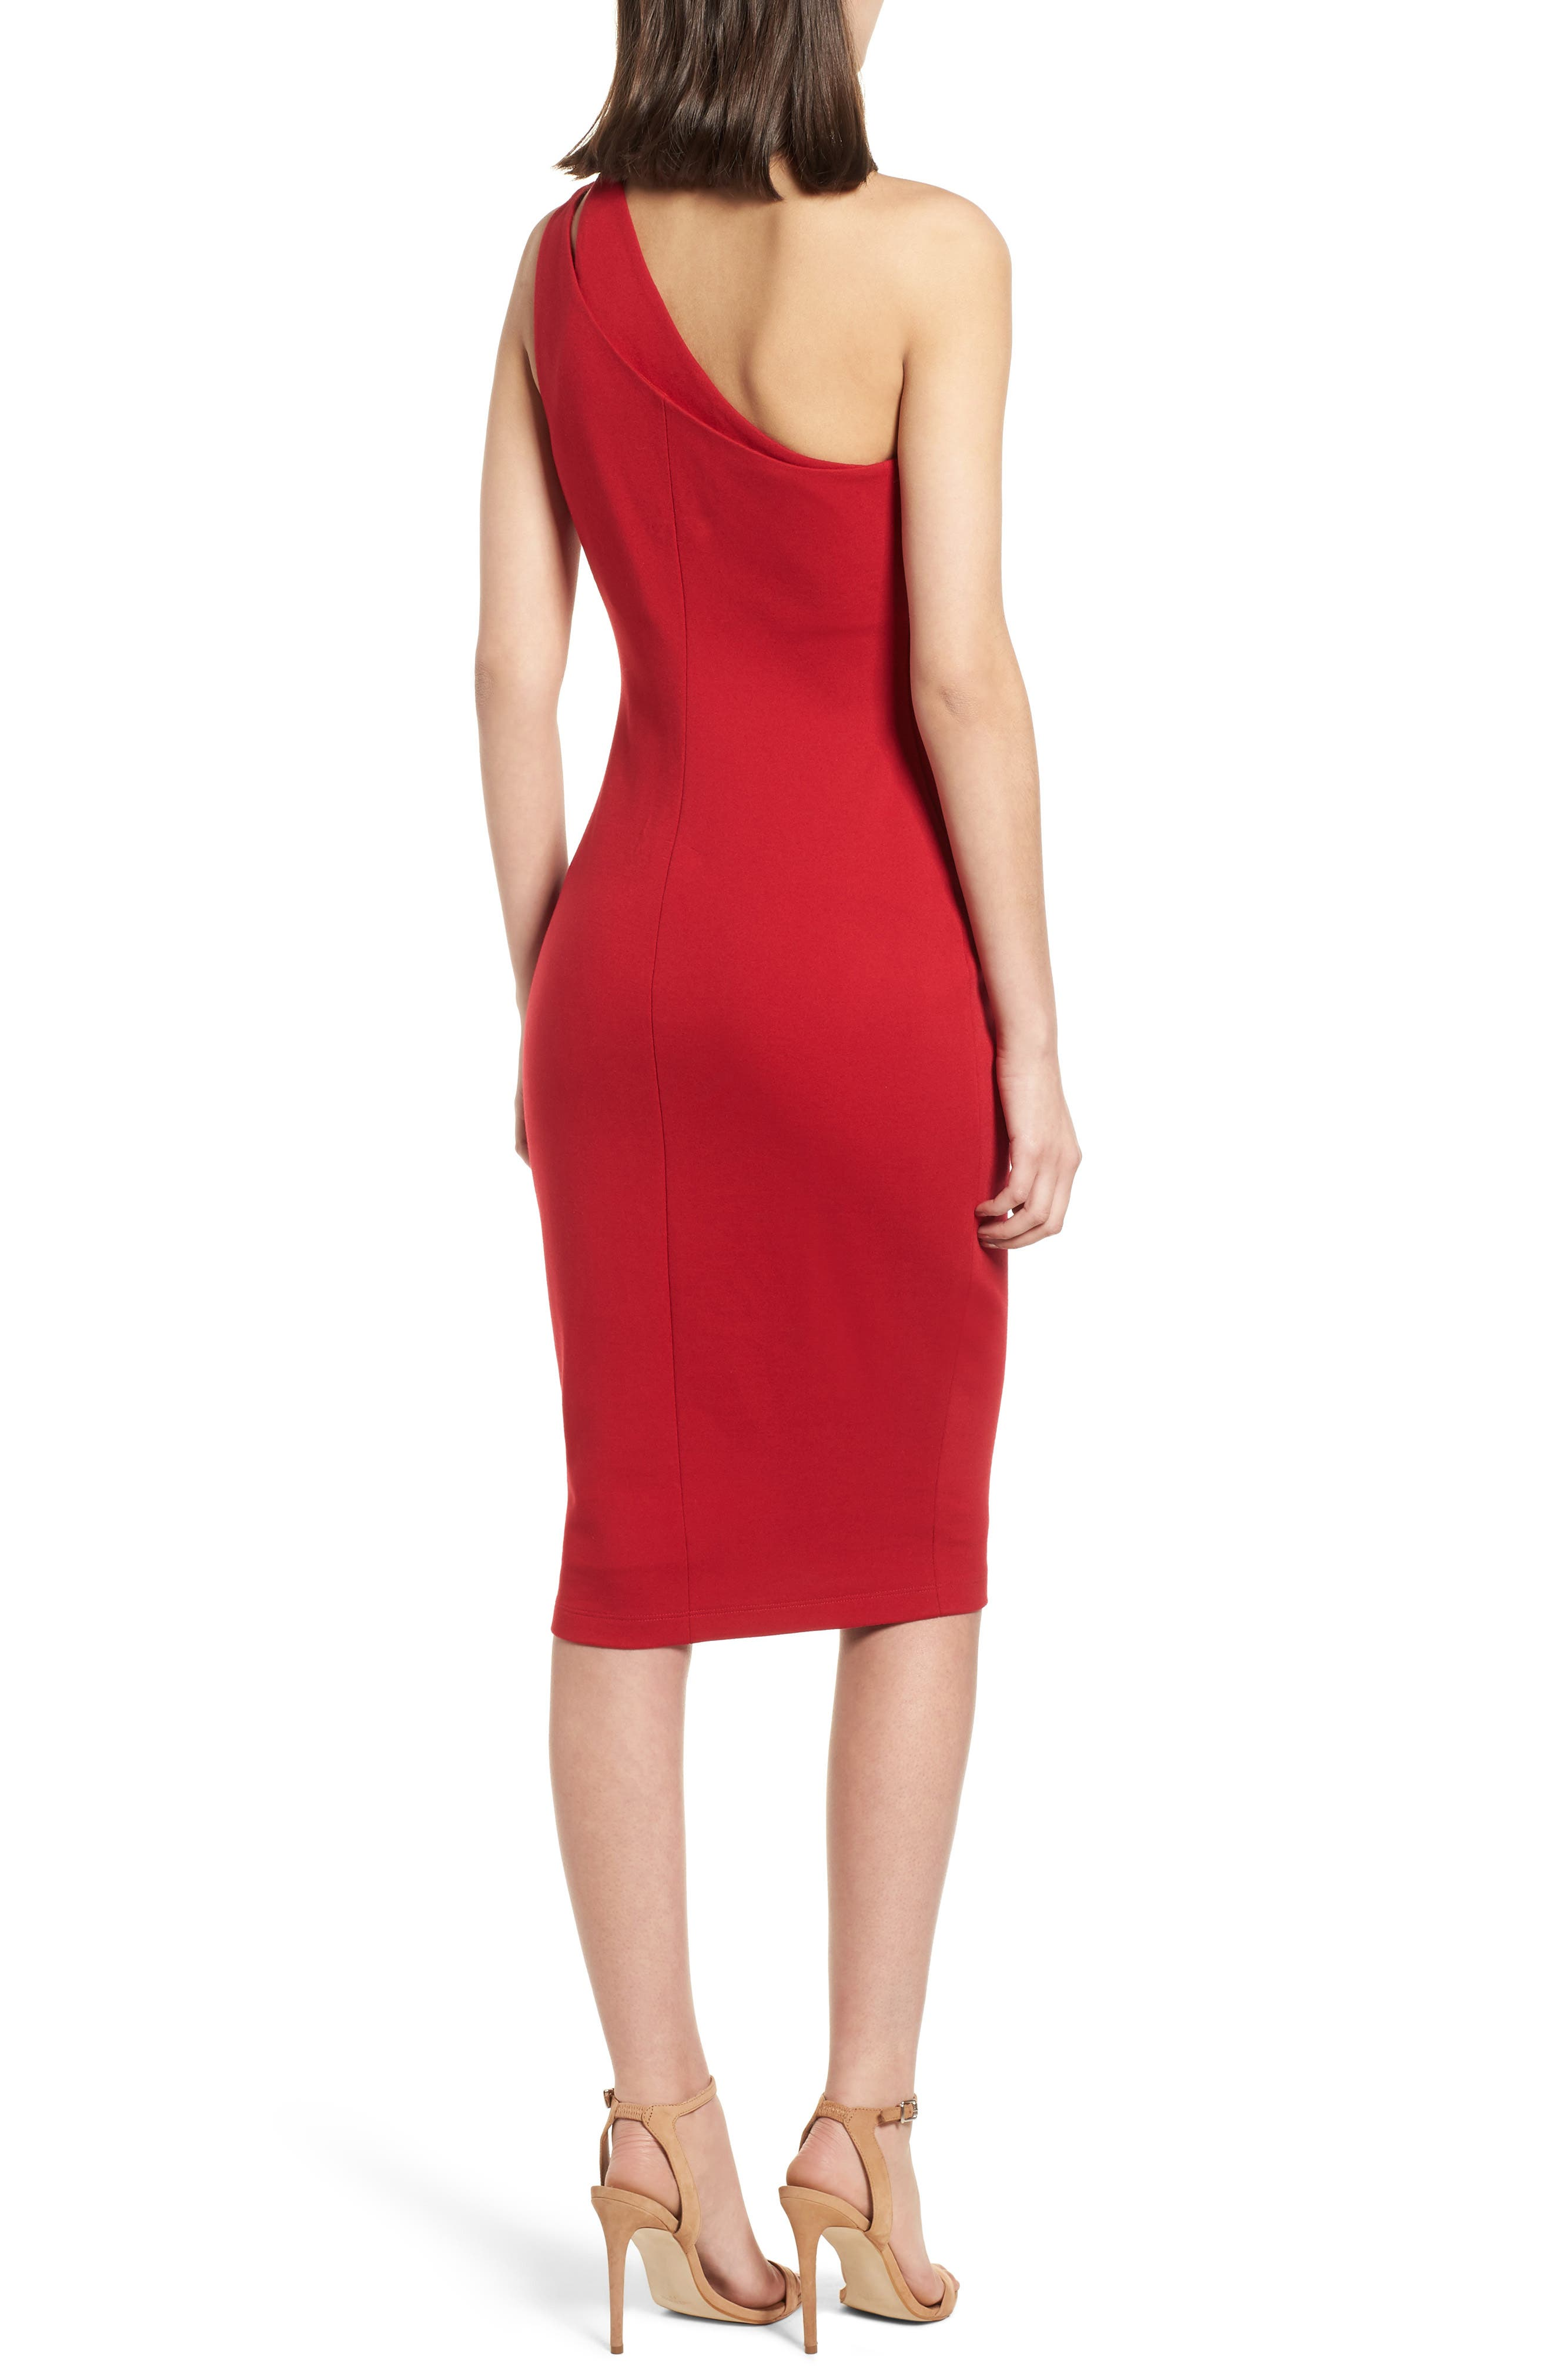 Sidewinder One-Shoulder Body-Con Dress,                             Alternate thumbnail 2, color,                             700